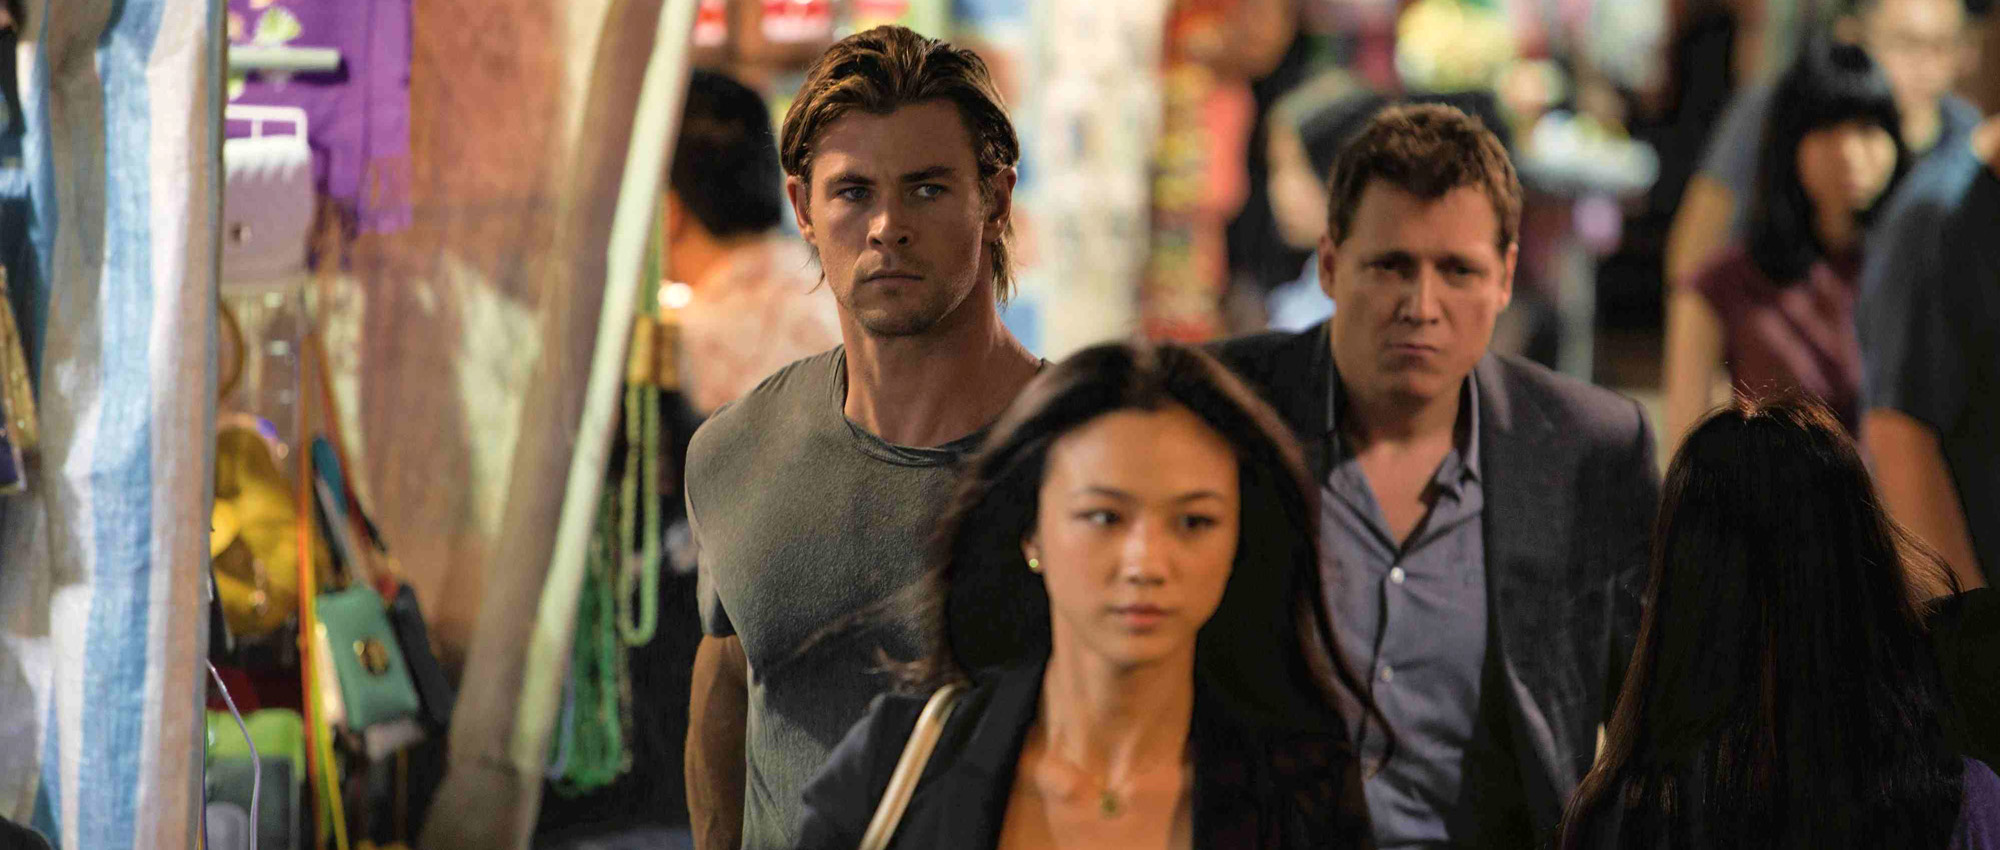 "Watch New Trailer of Cyber Attack Film ""Blackhat"" 